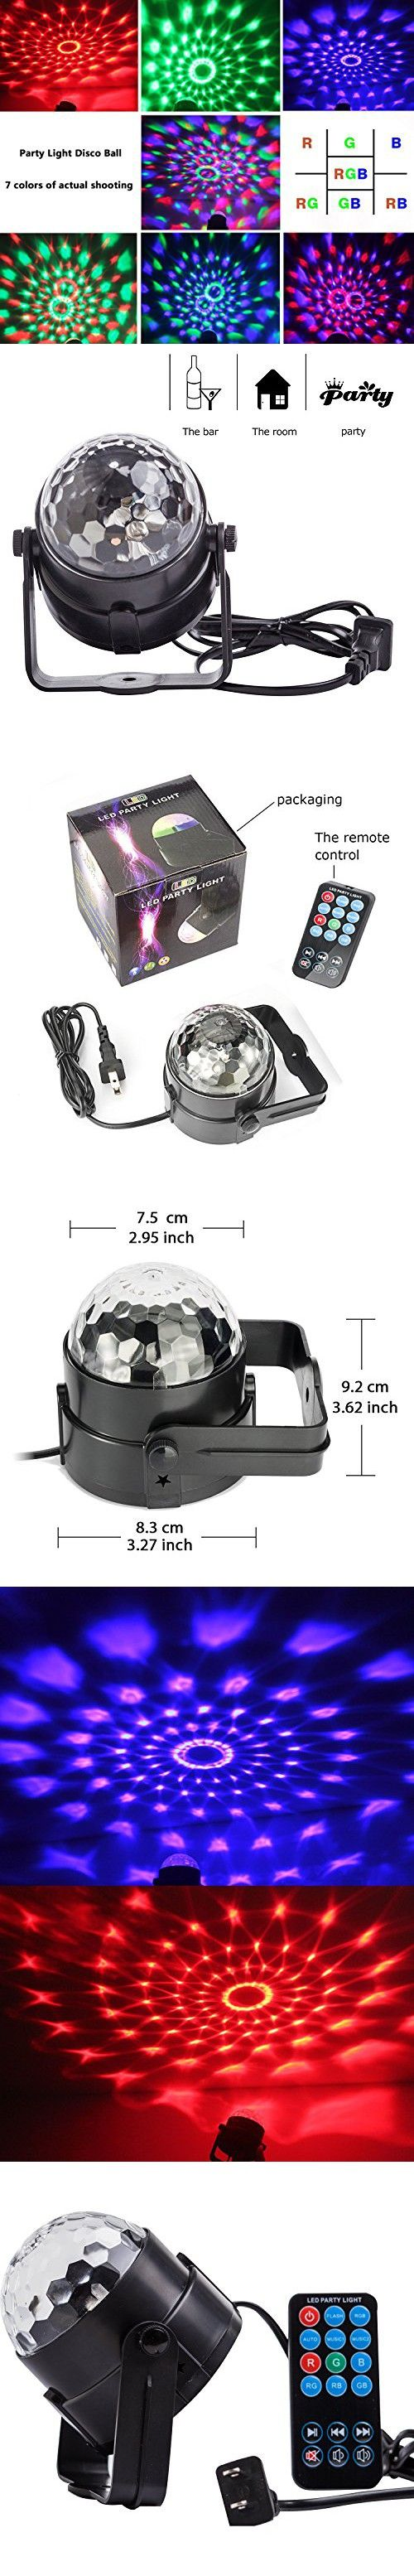 Spriak Party Lights Disco Ball 3w Led Strobe Stage Halloween Christmas Rgb Led Par Light Lighting with Remote Control for DJ Bar Karaoke Xmas Wedding Show Club Pub